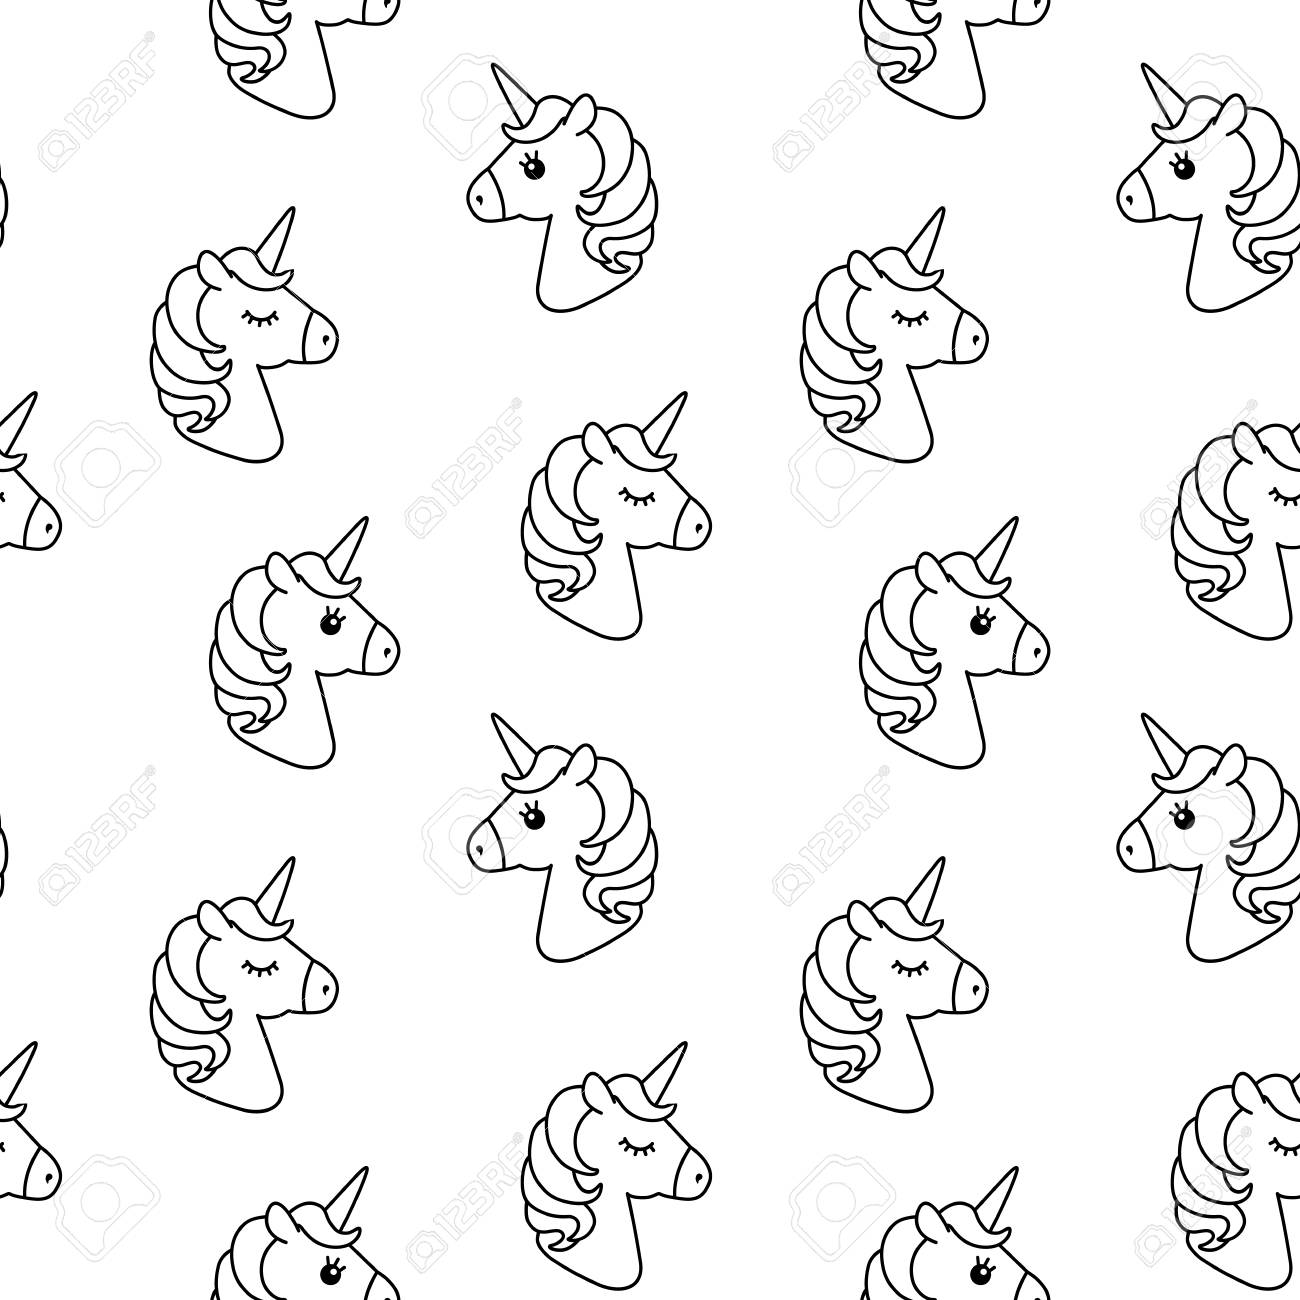 Unicorn Vector Seamless Pattern Horse Head Sleep Black And Stock Photo Picture And Royalty Free Image Image 88907320